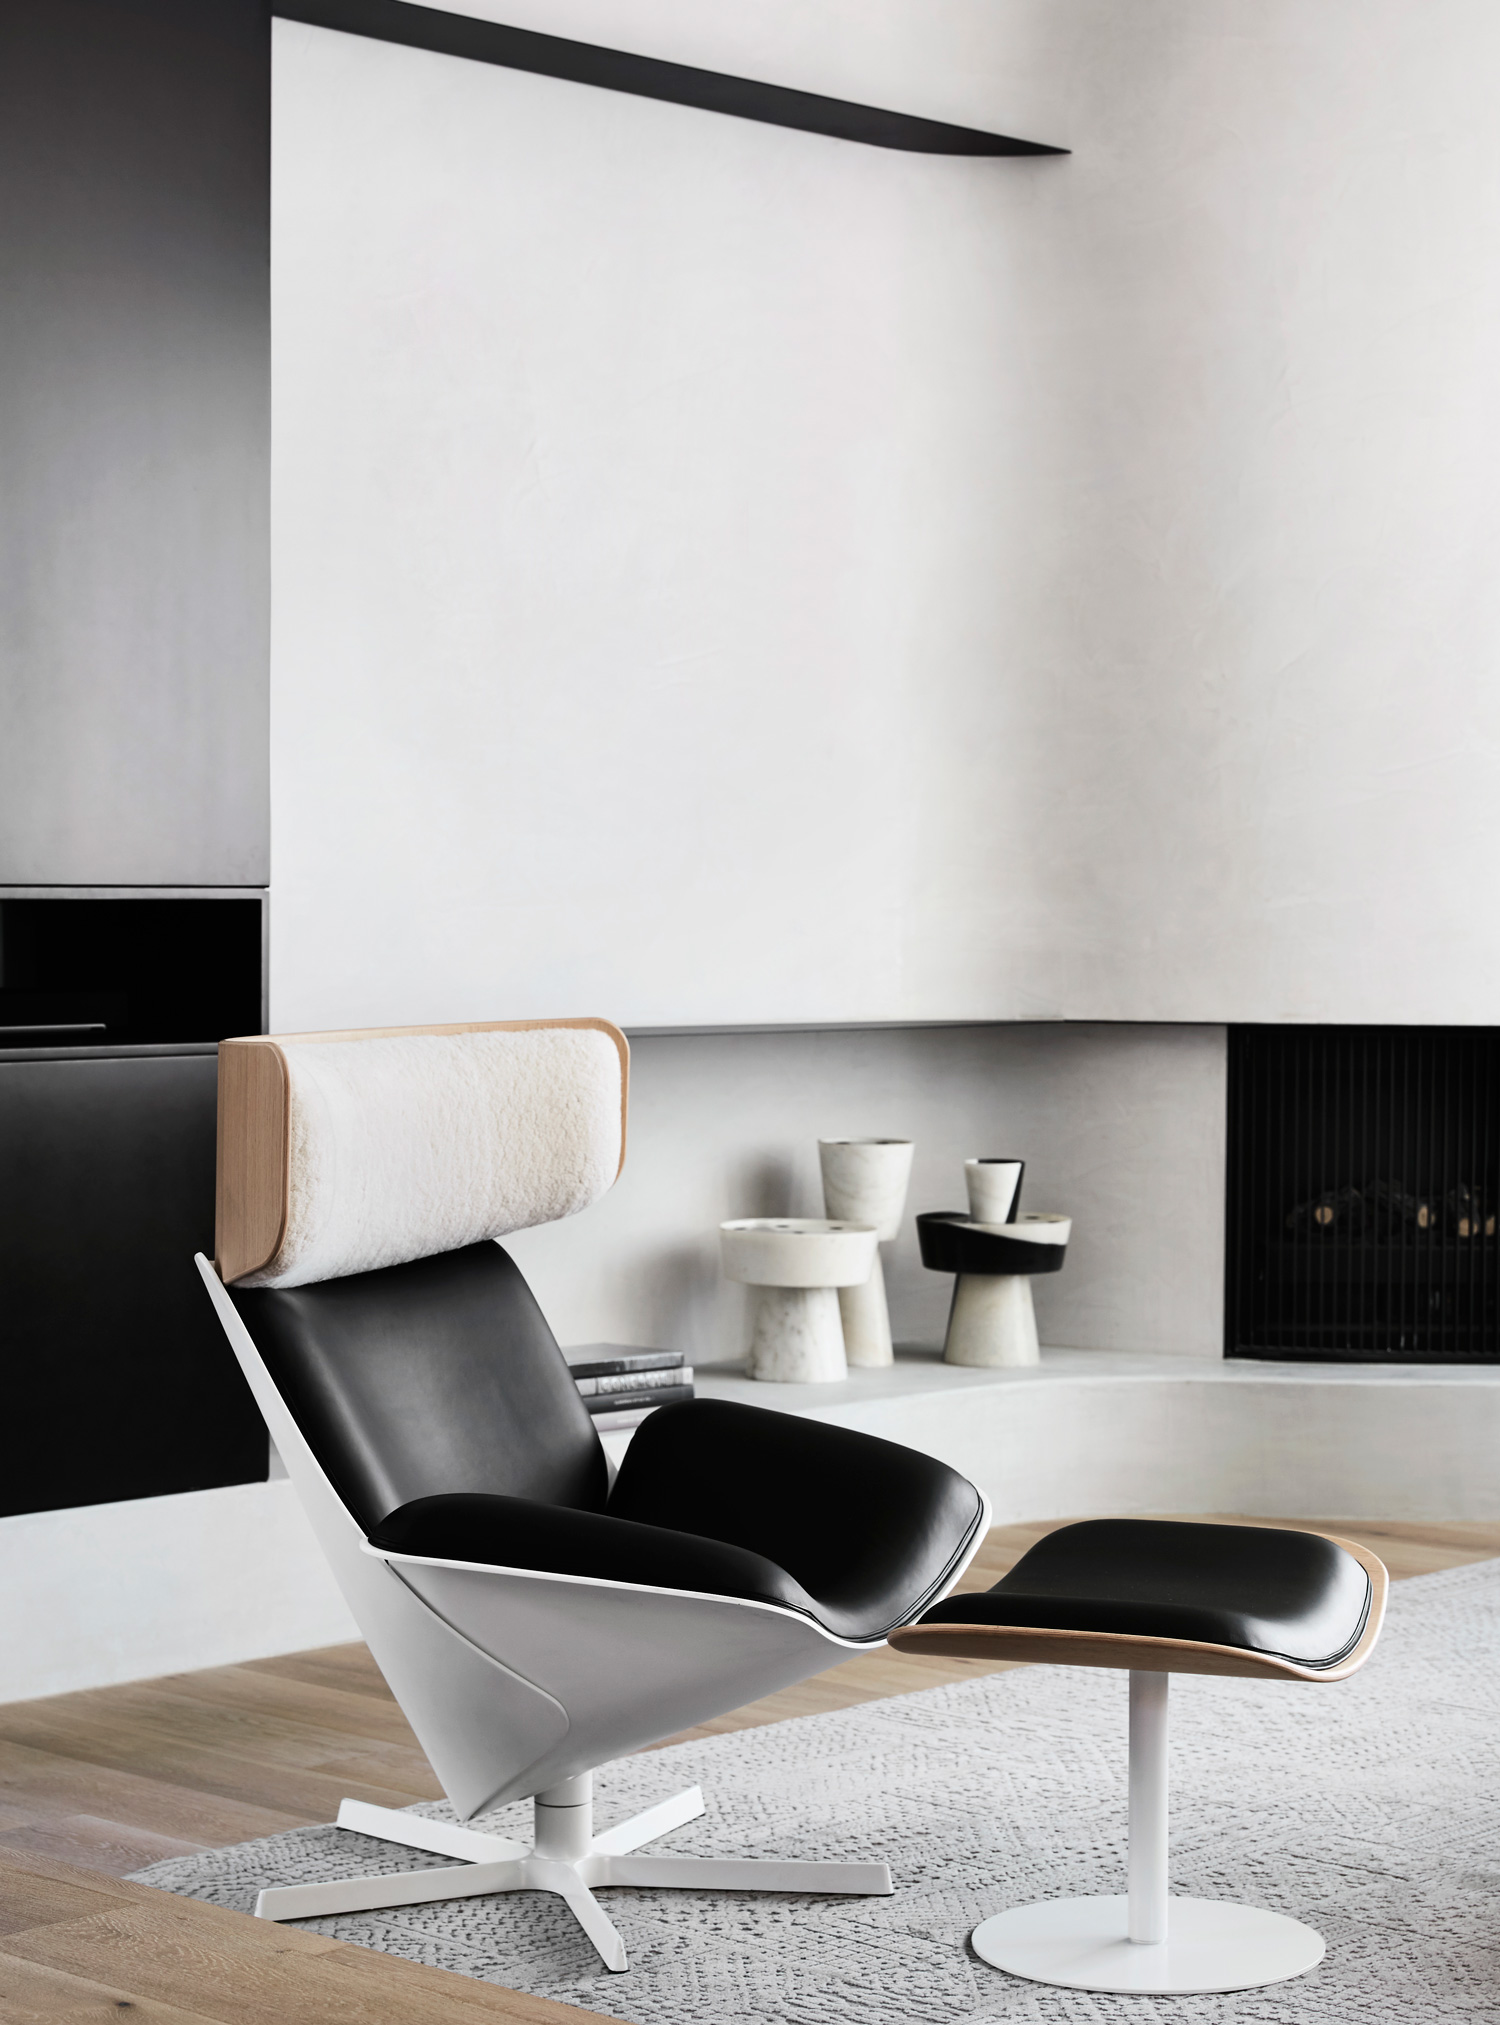 Elsternwick residence Transformation by Mim Design | Yellowtrace